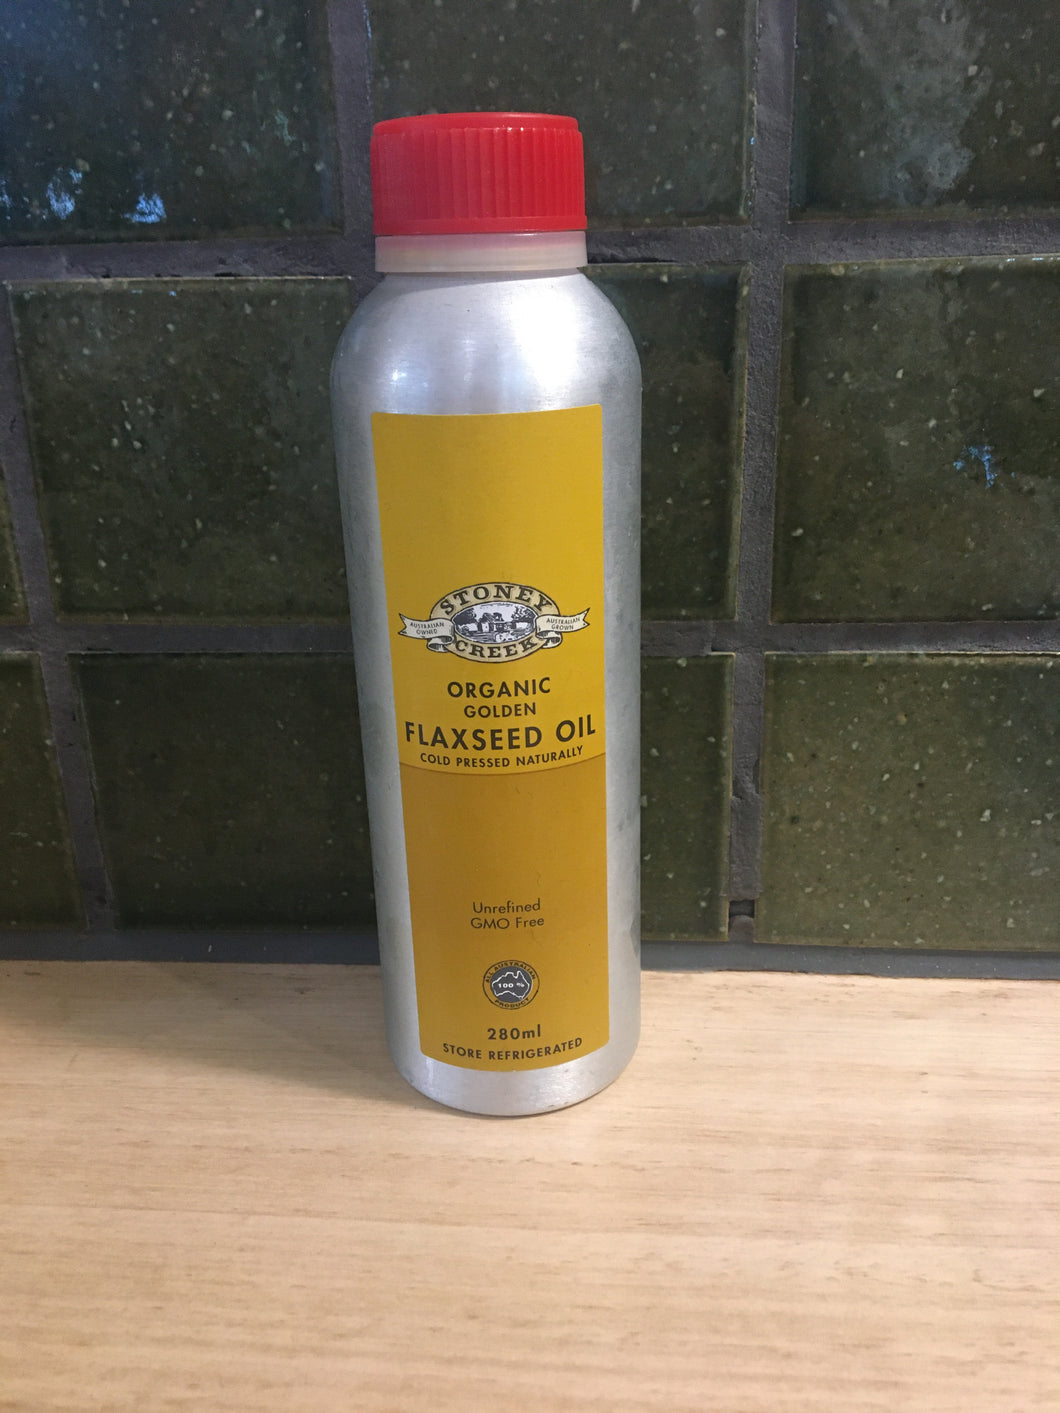 Stoney Creek - Flaxseed Oil - Golden 280ml